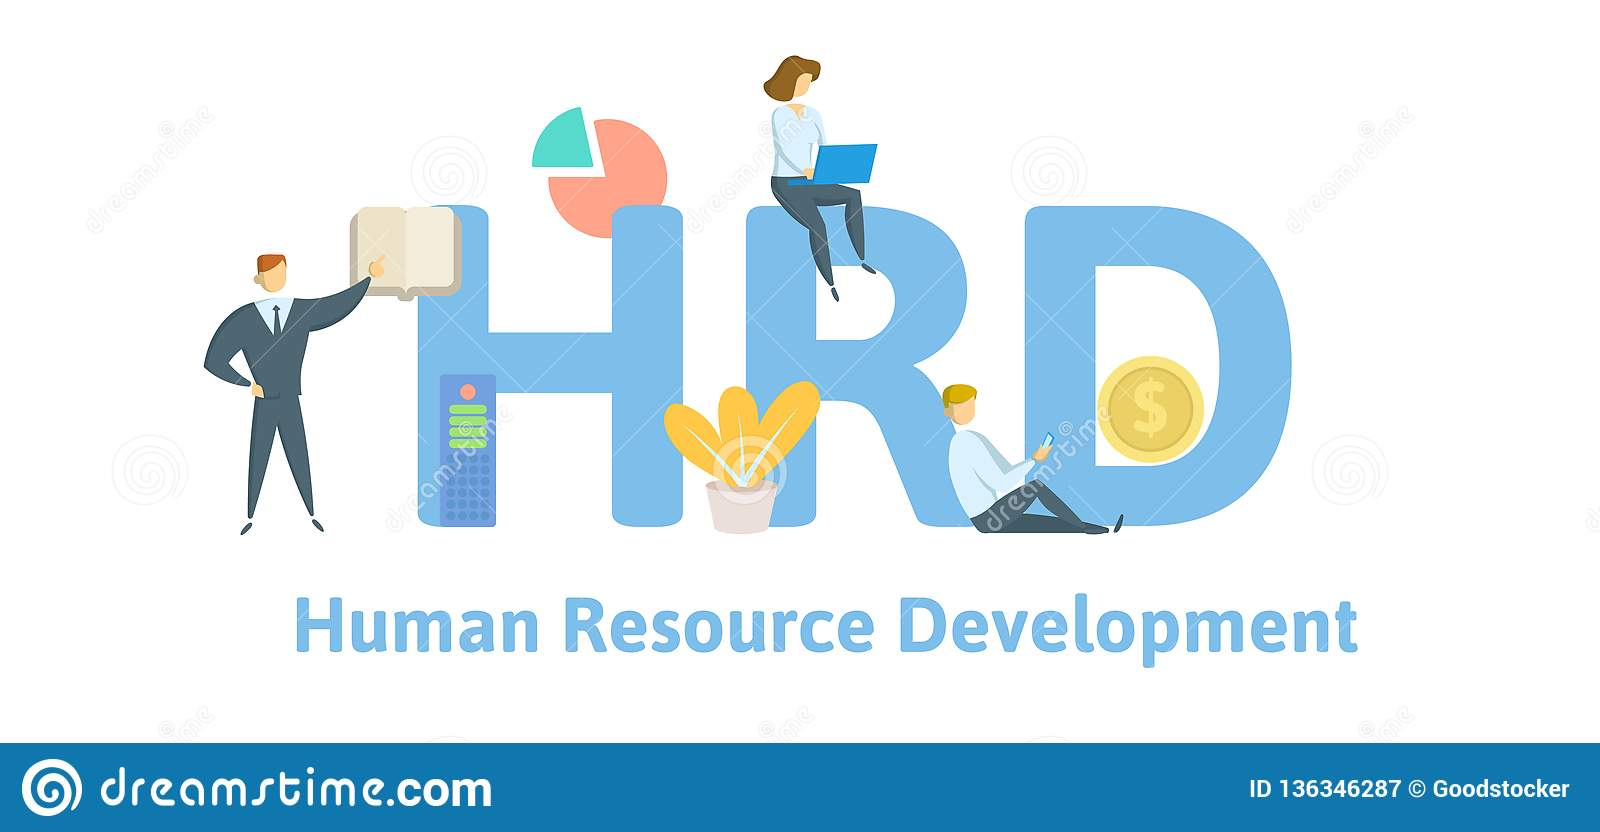 hrd  human resource development  concept with keywords  letters and icons  flat vector